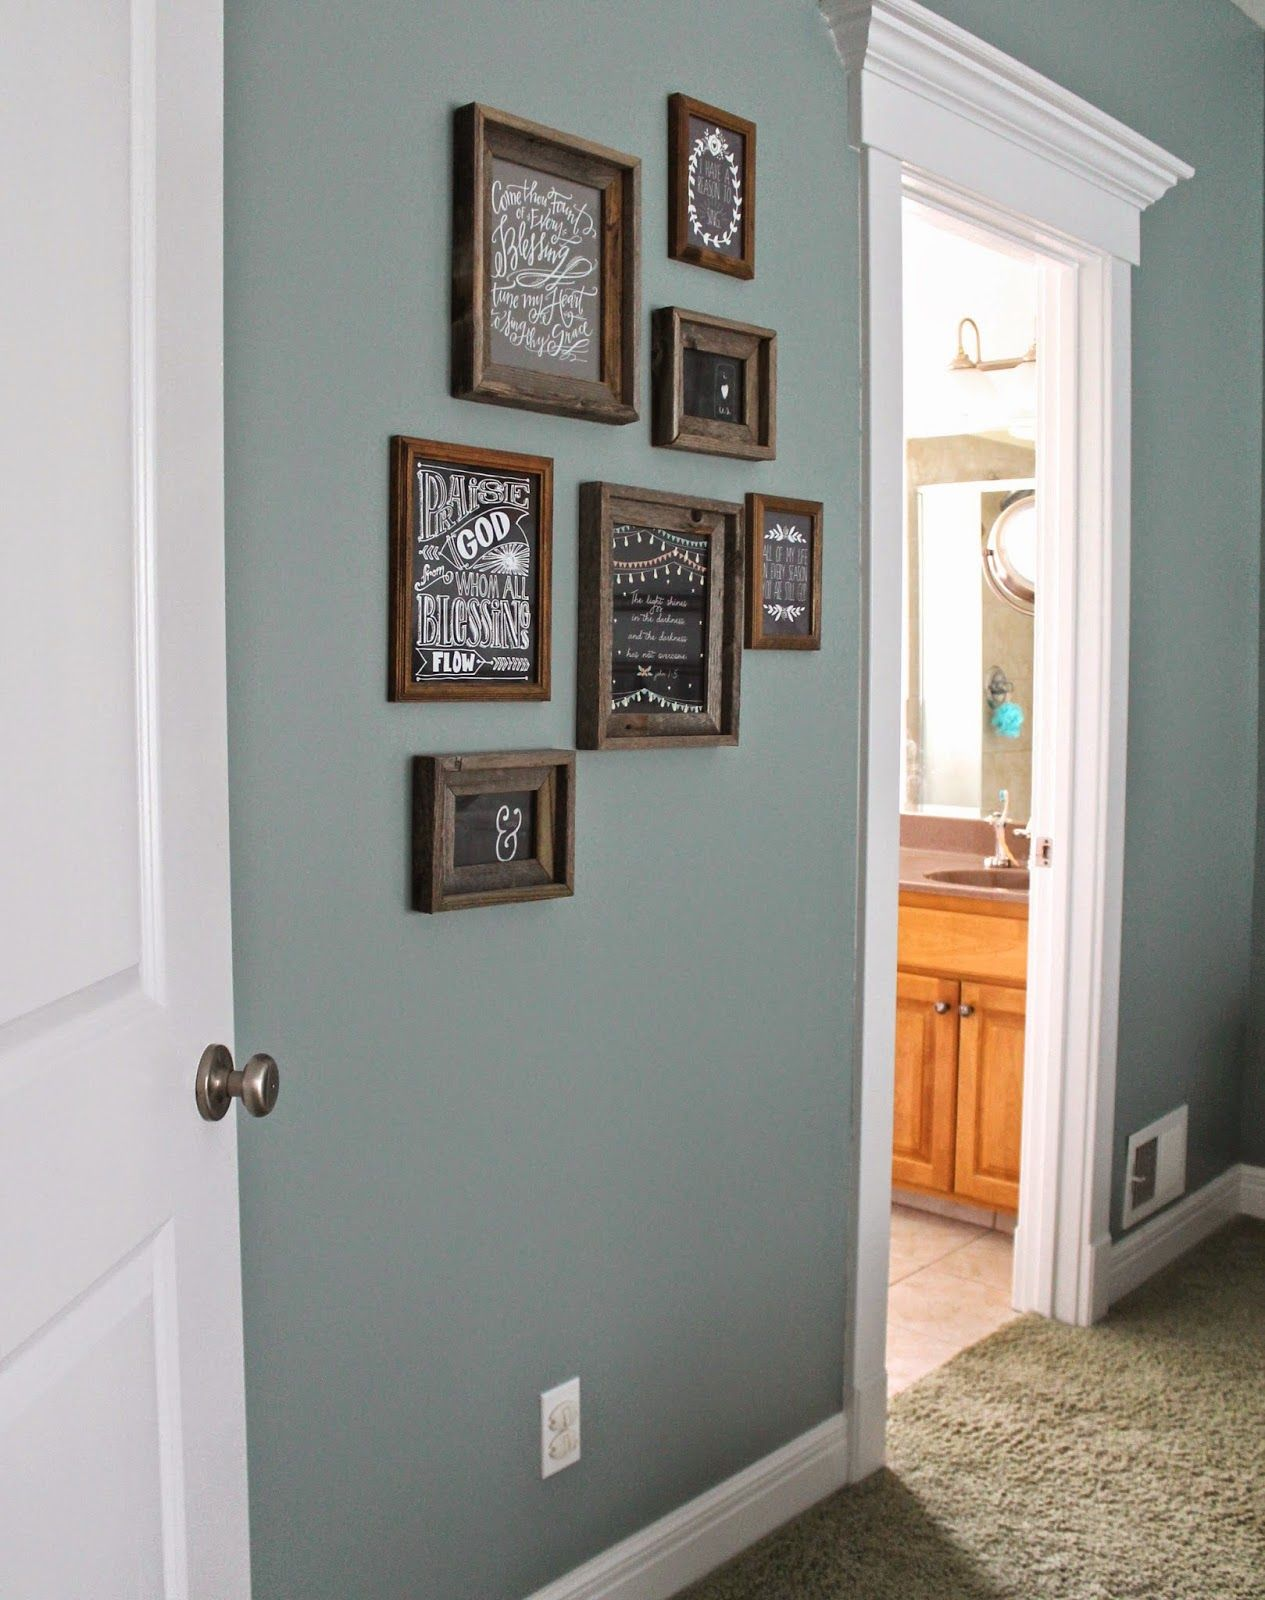 Paint color valspar blue arrow dark rustic frames hobby Hallway colour scheme ideas